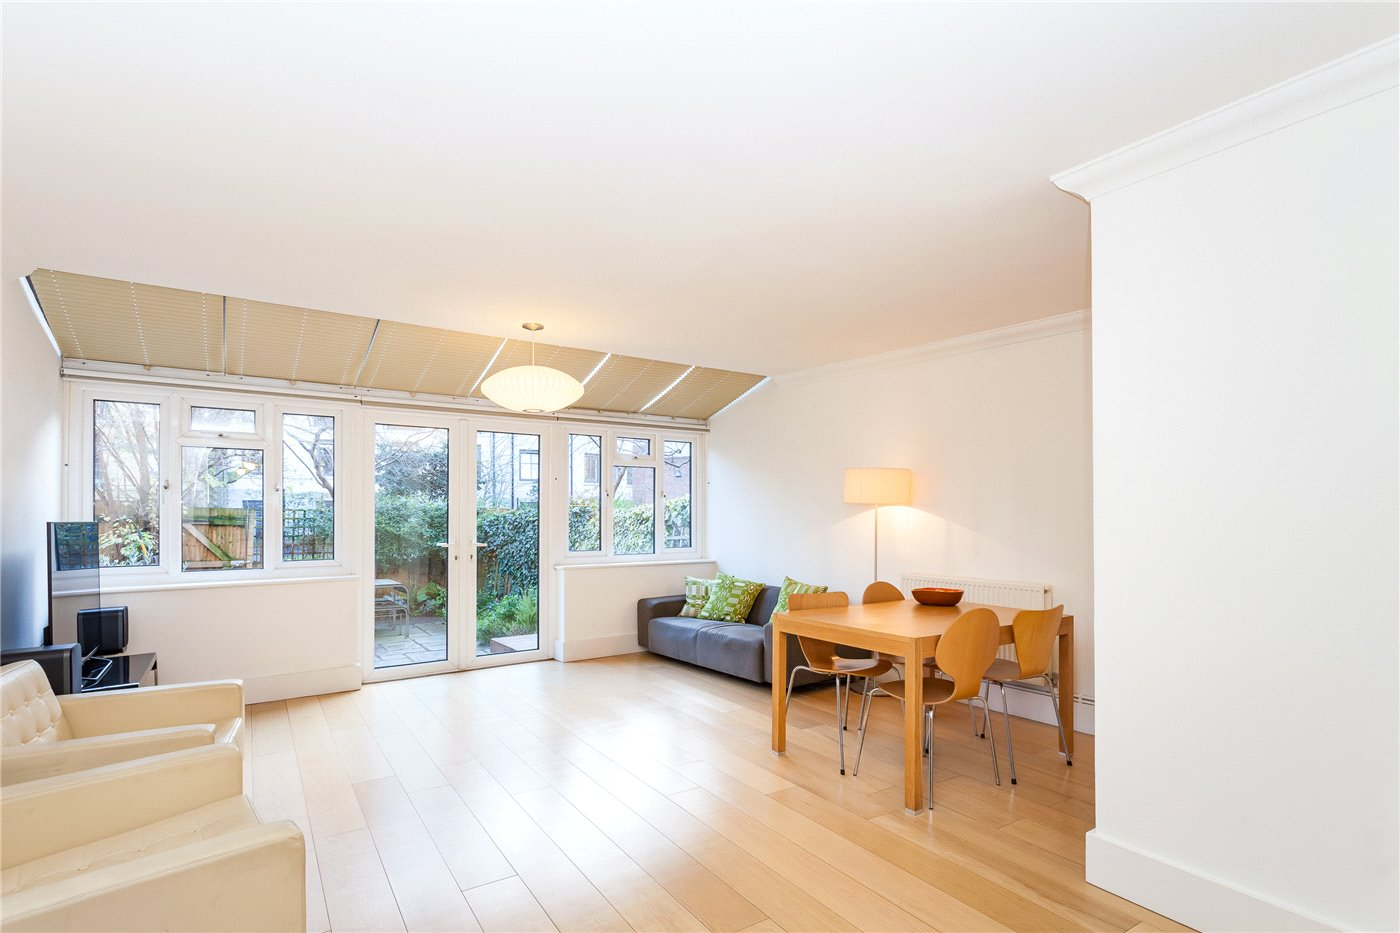 Fieldway Crescent N Property For Sale